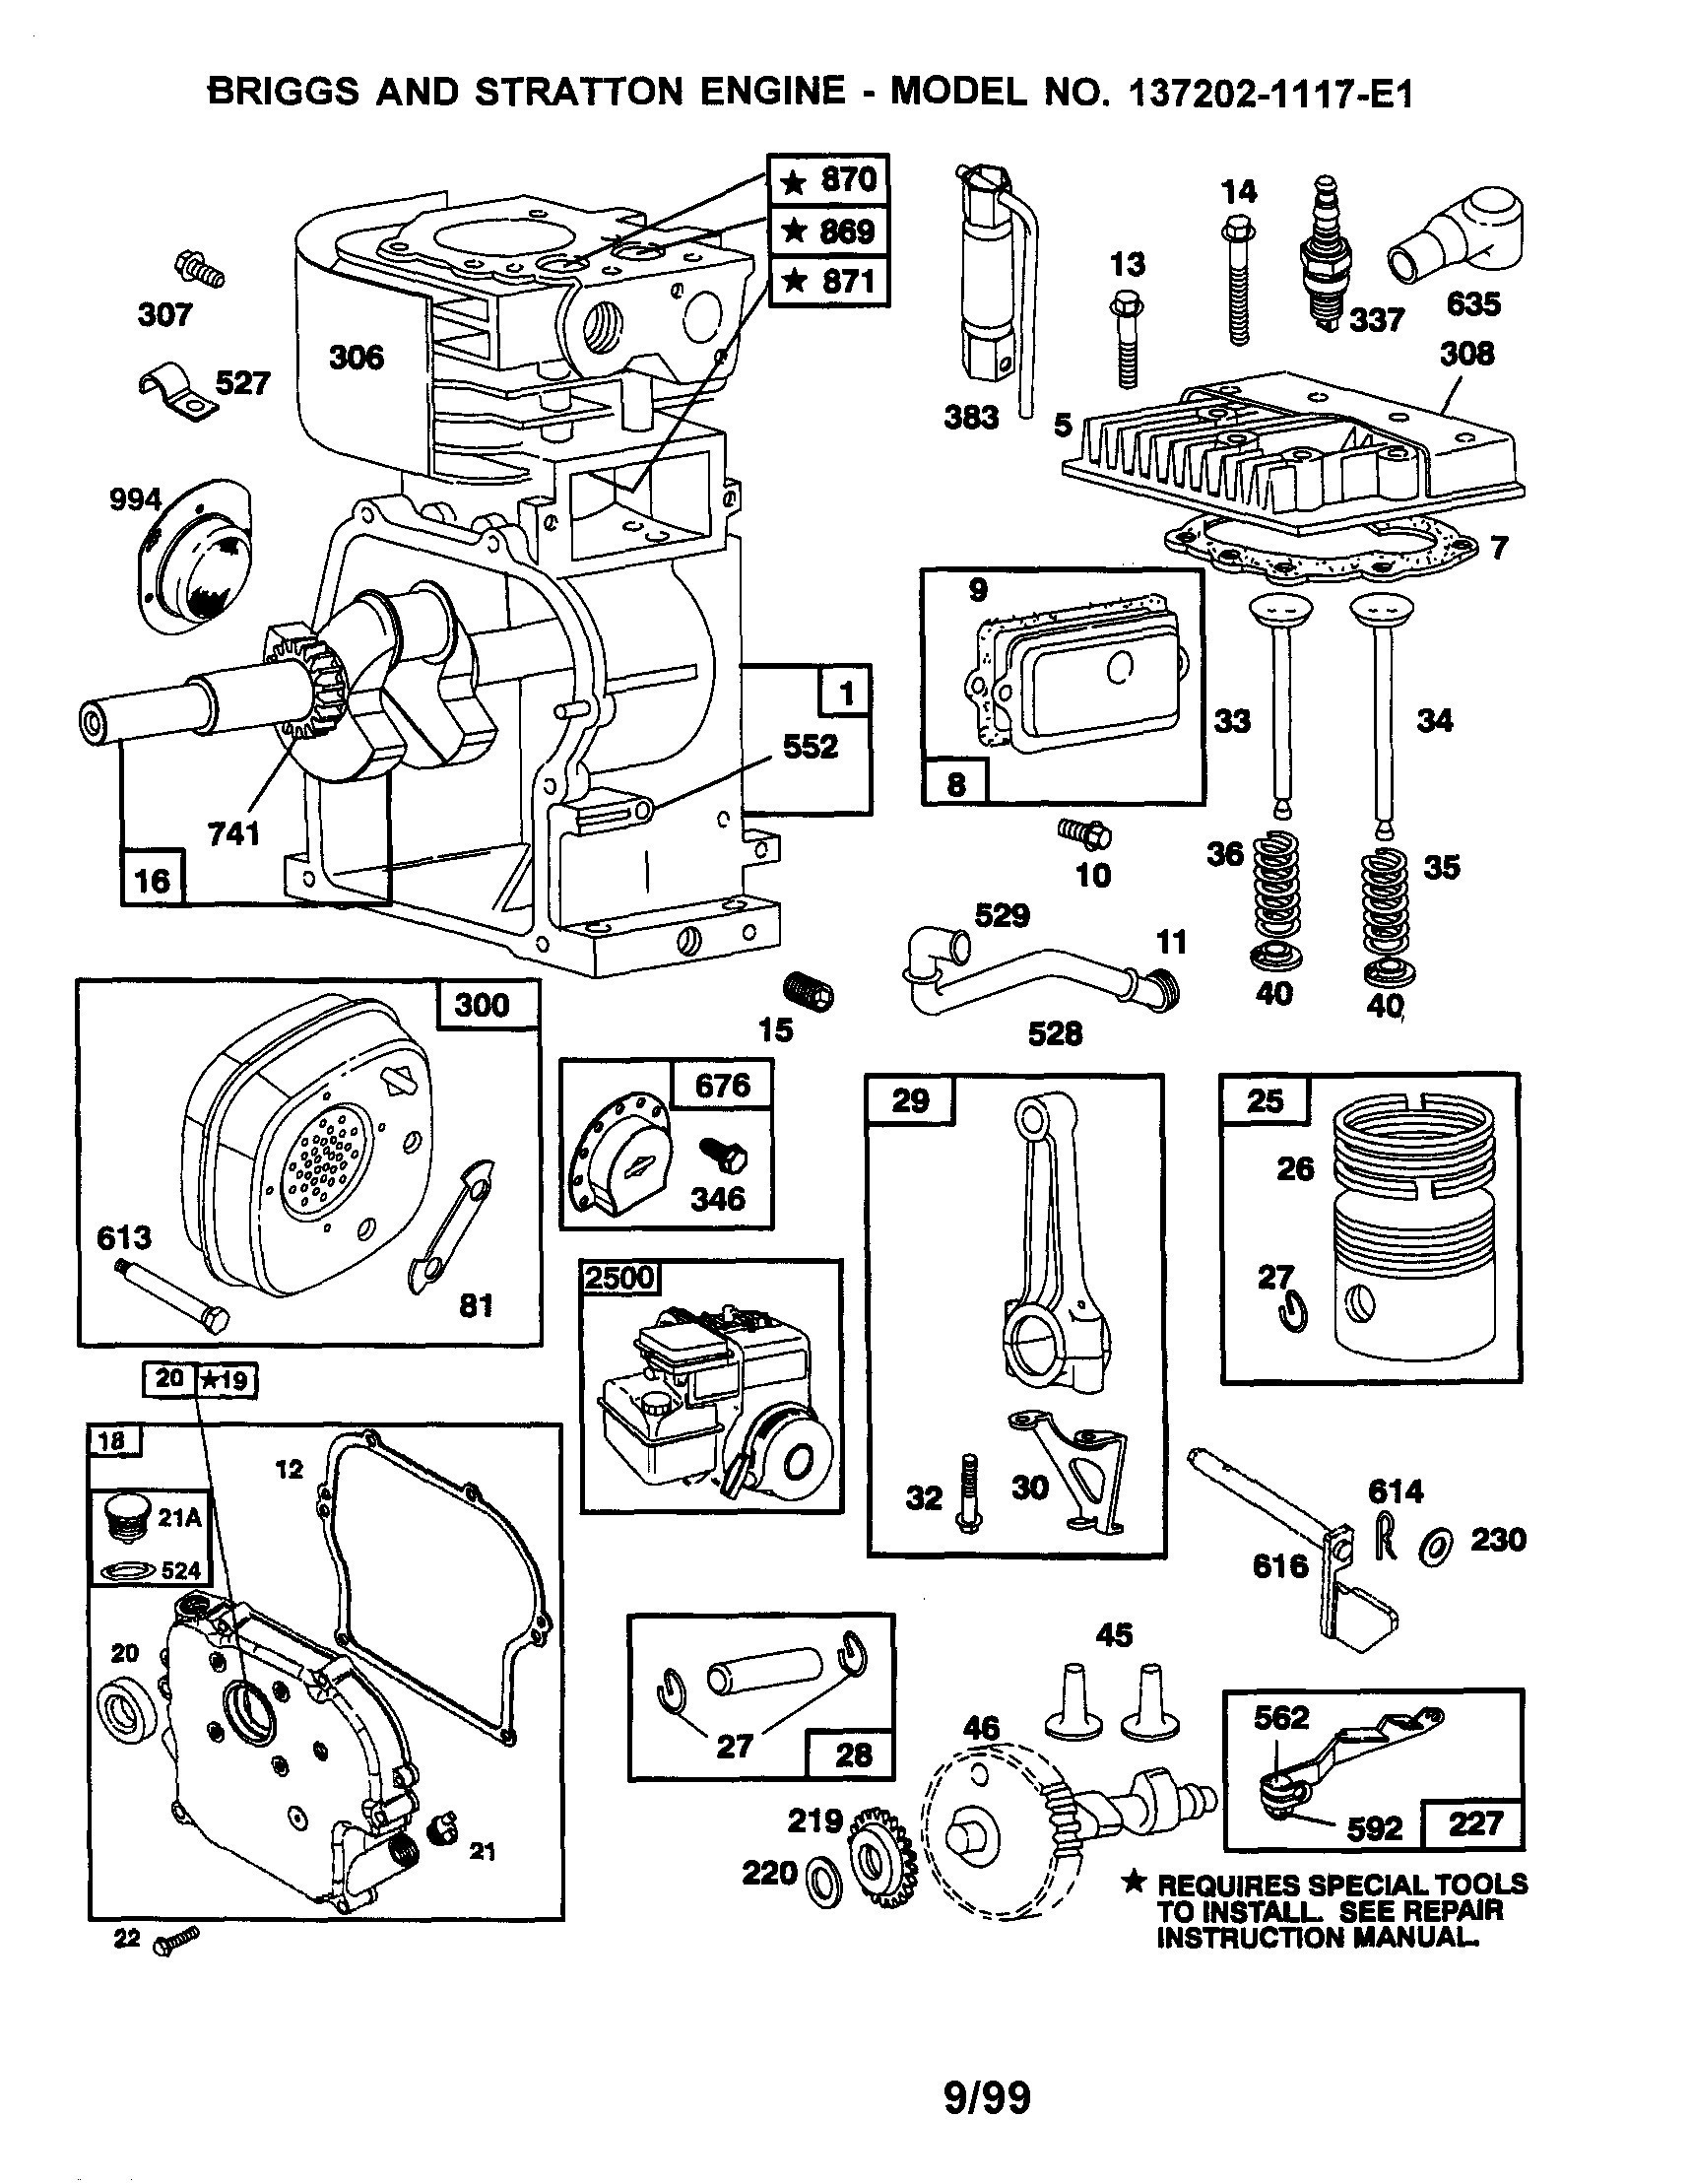 briggs stratton engine parts diagram